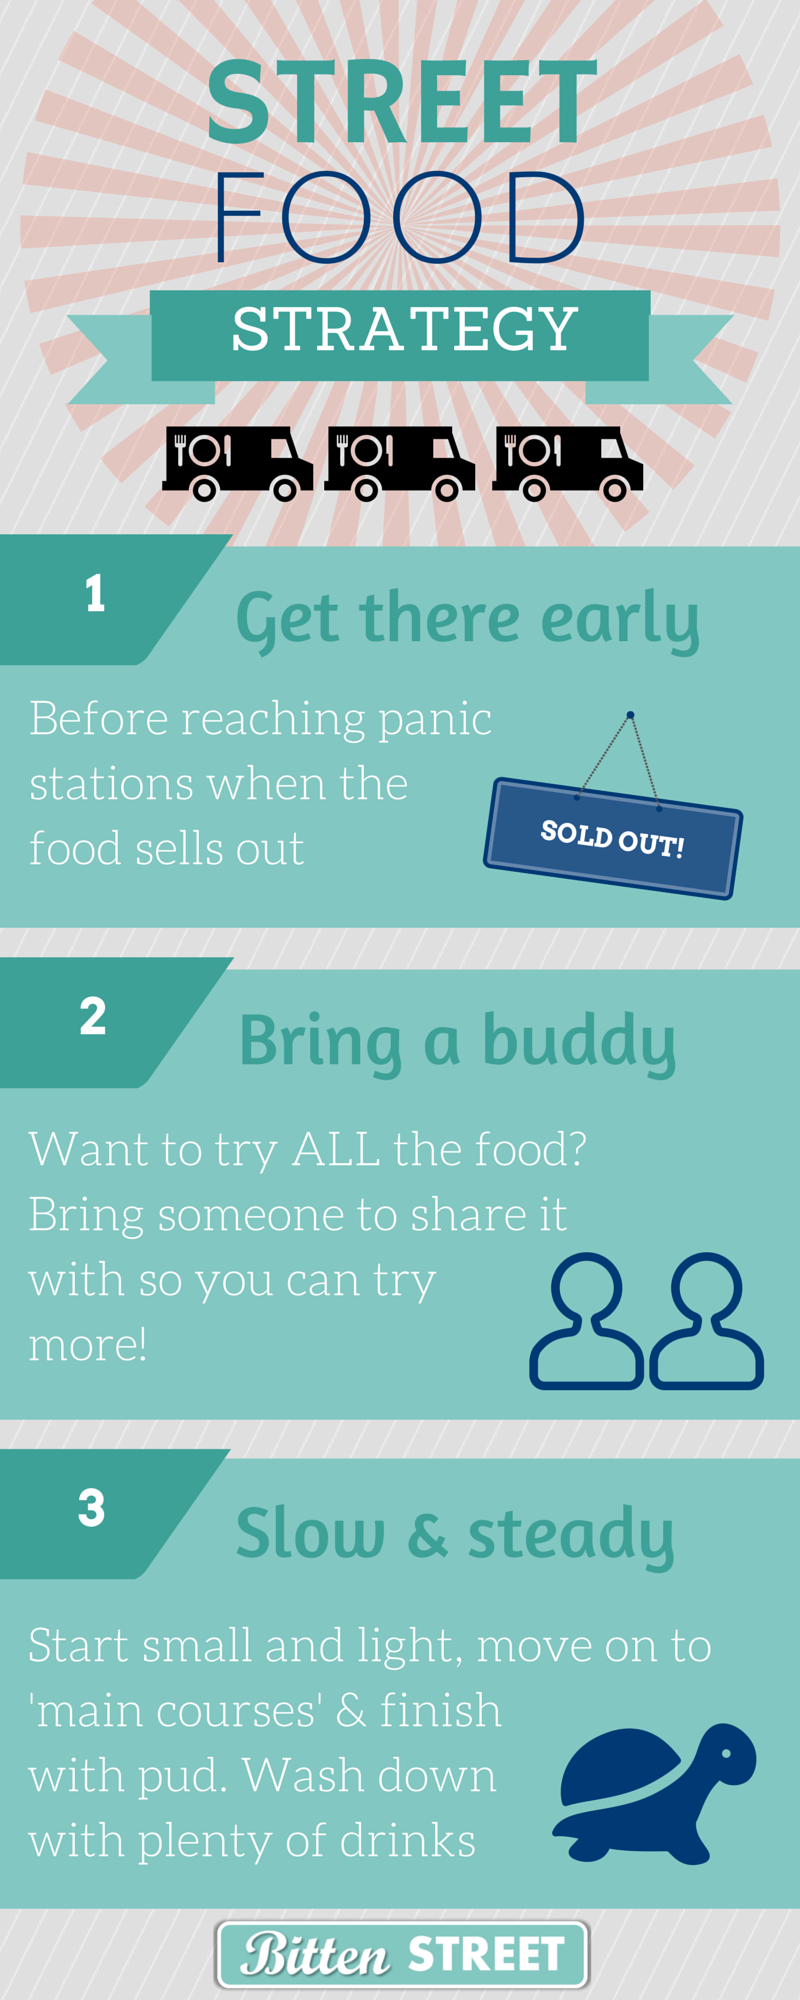 Street Food Strategy Infographic